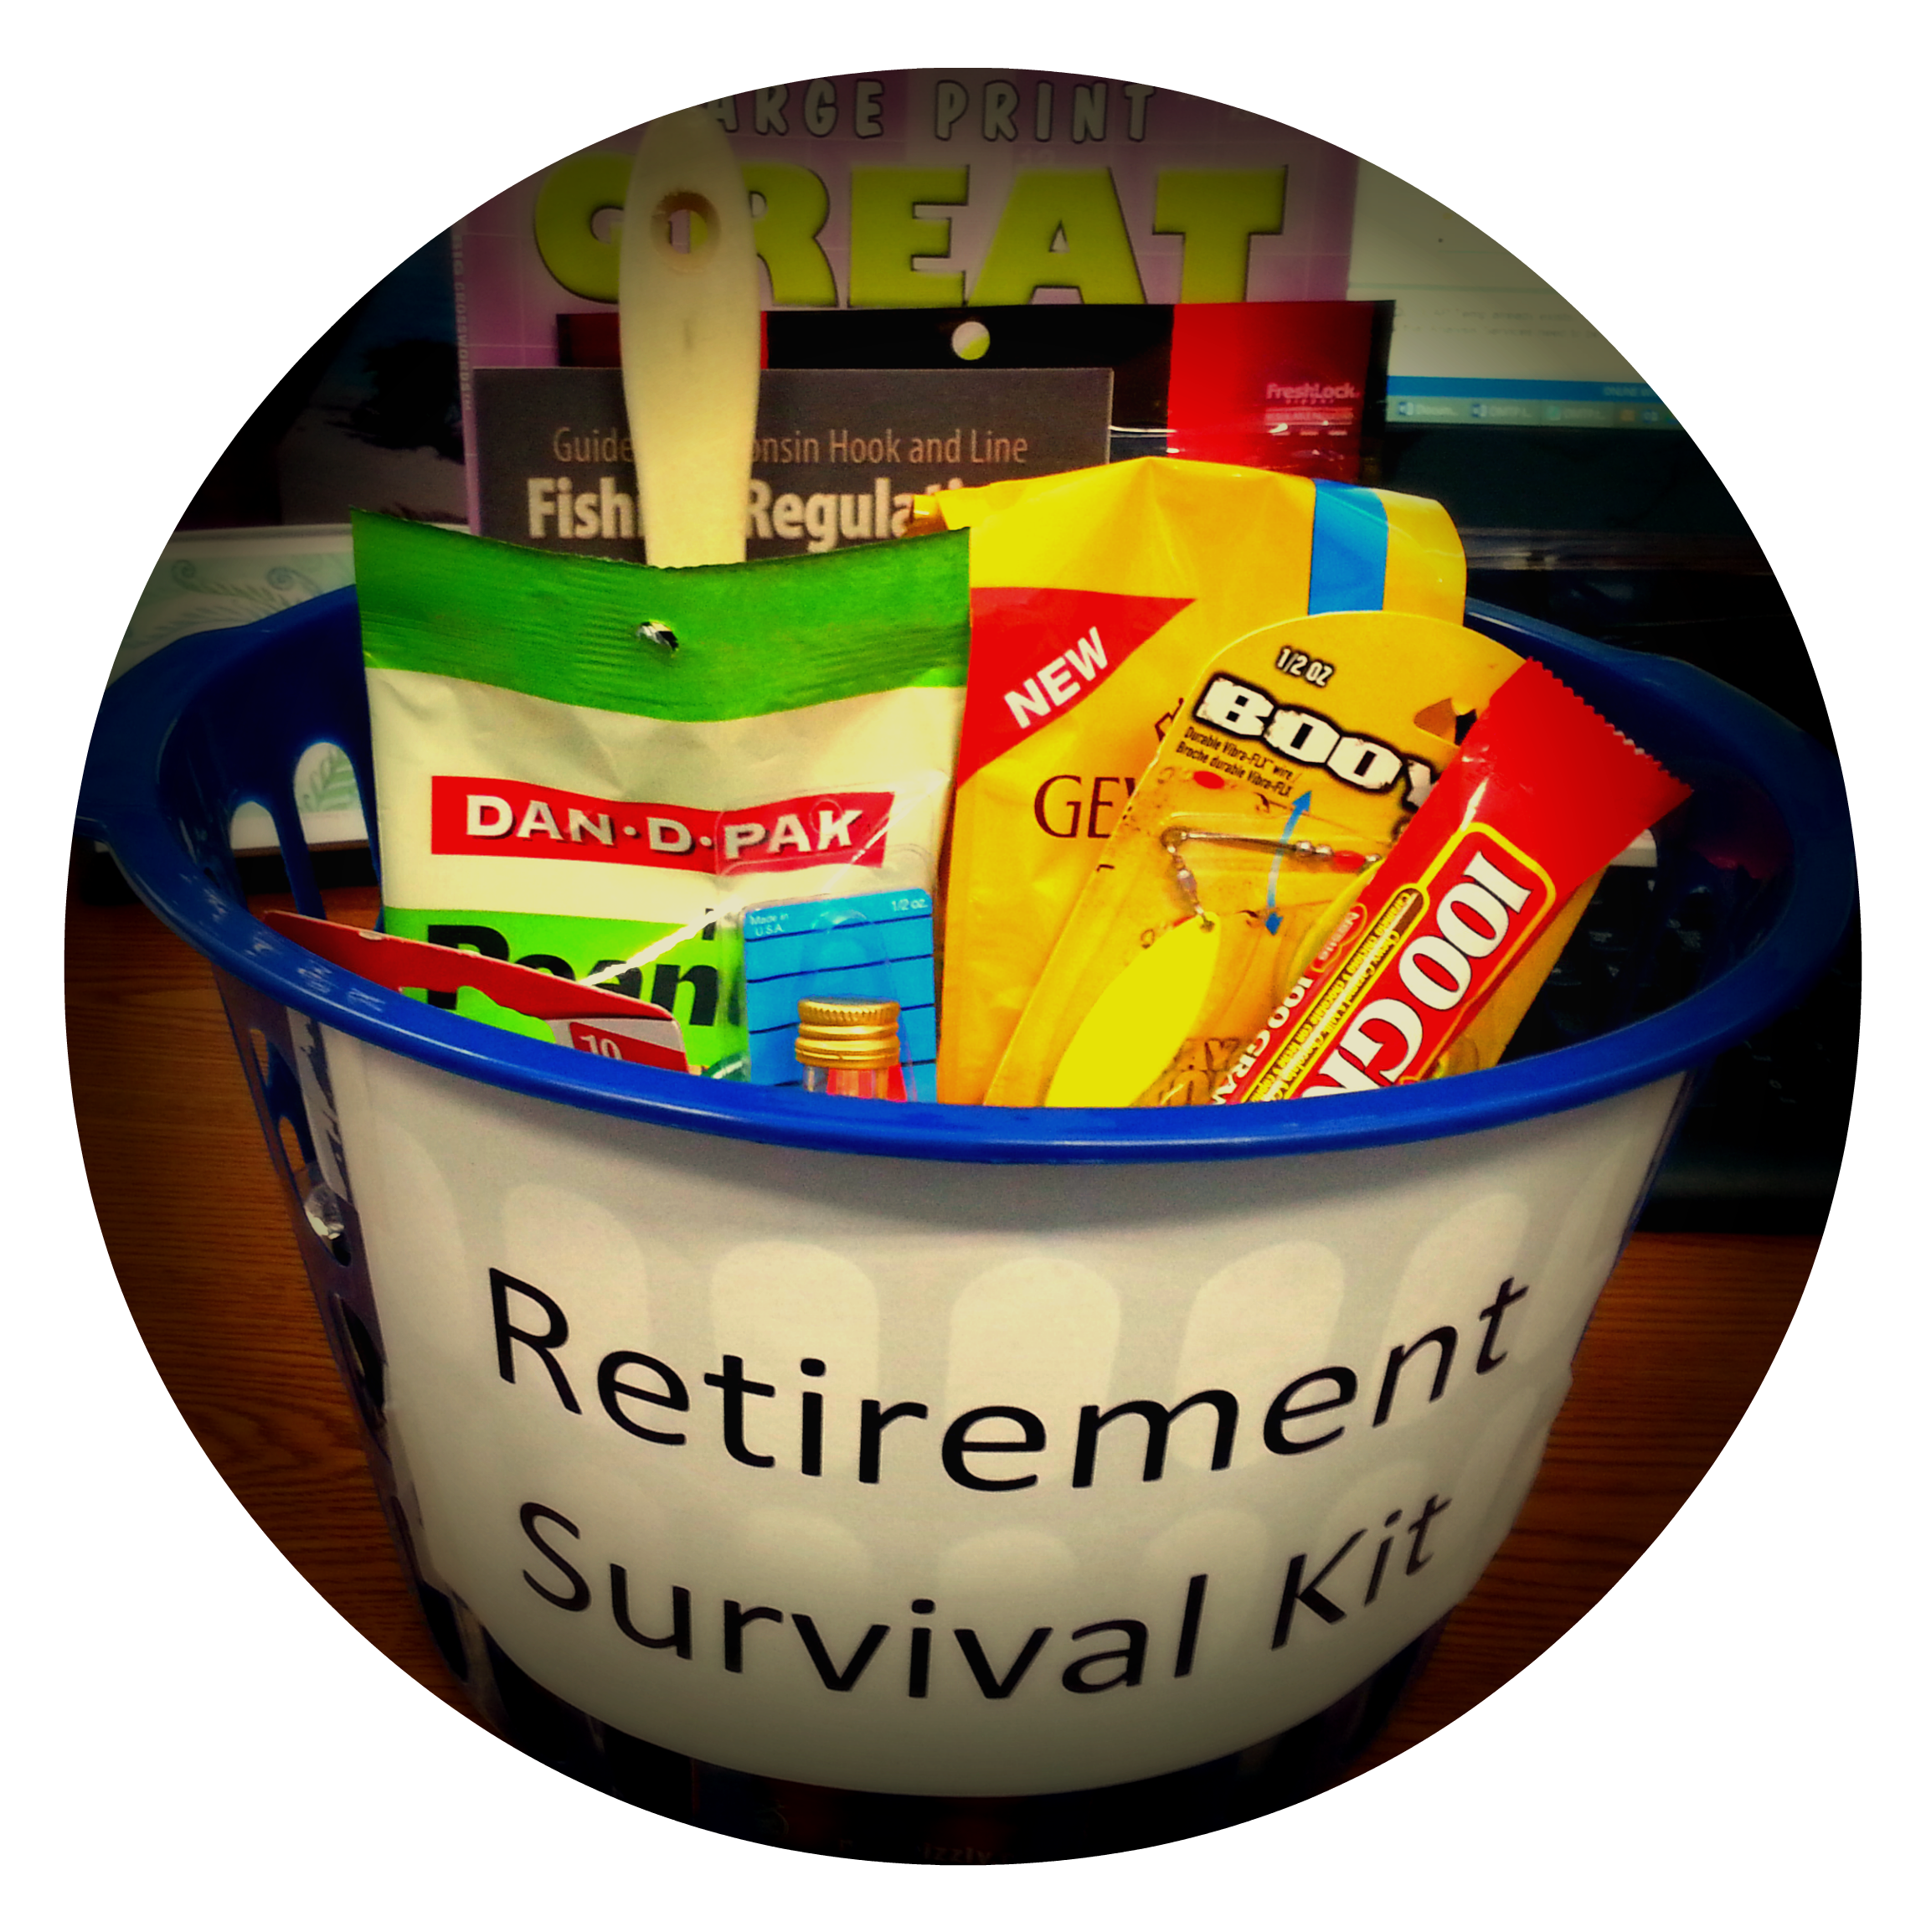 Retirement Survival Kit for a man - paint brush, duct tape, fishing lures, fishing regulations book, crossword puzzle book (large print), dice, playing cards, 100 Grand candy bar, beef jerky, mini alcohol bottles, peanuts, coffee, fruit (I made this for a co-worker retiring today.)